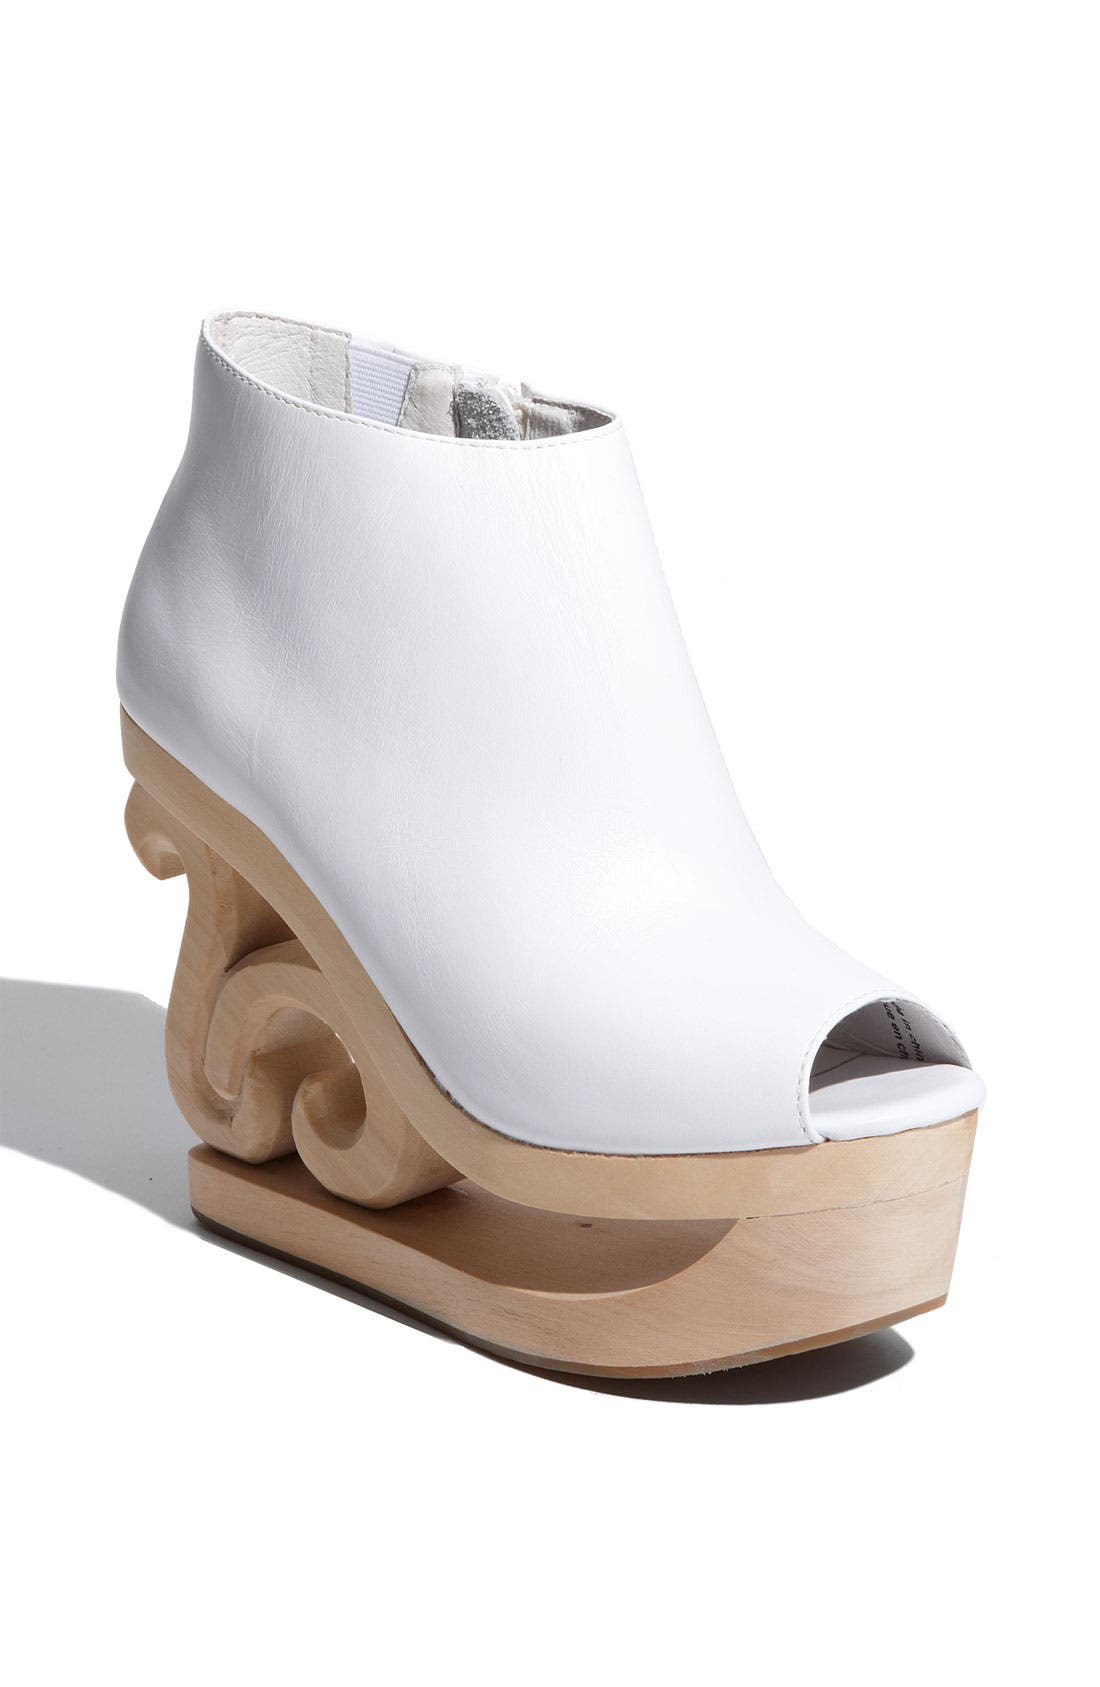 Alternate Image 1 Selected - Jeffrey Campbell 'Skate' Bootie